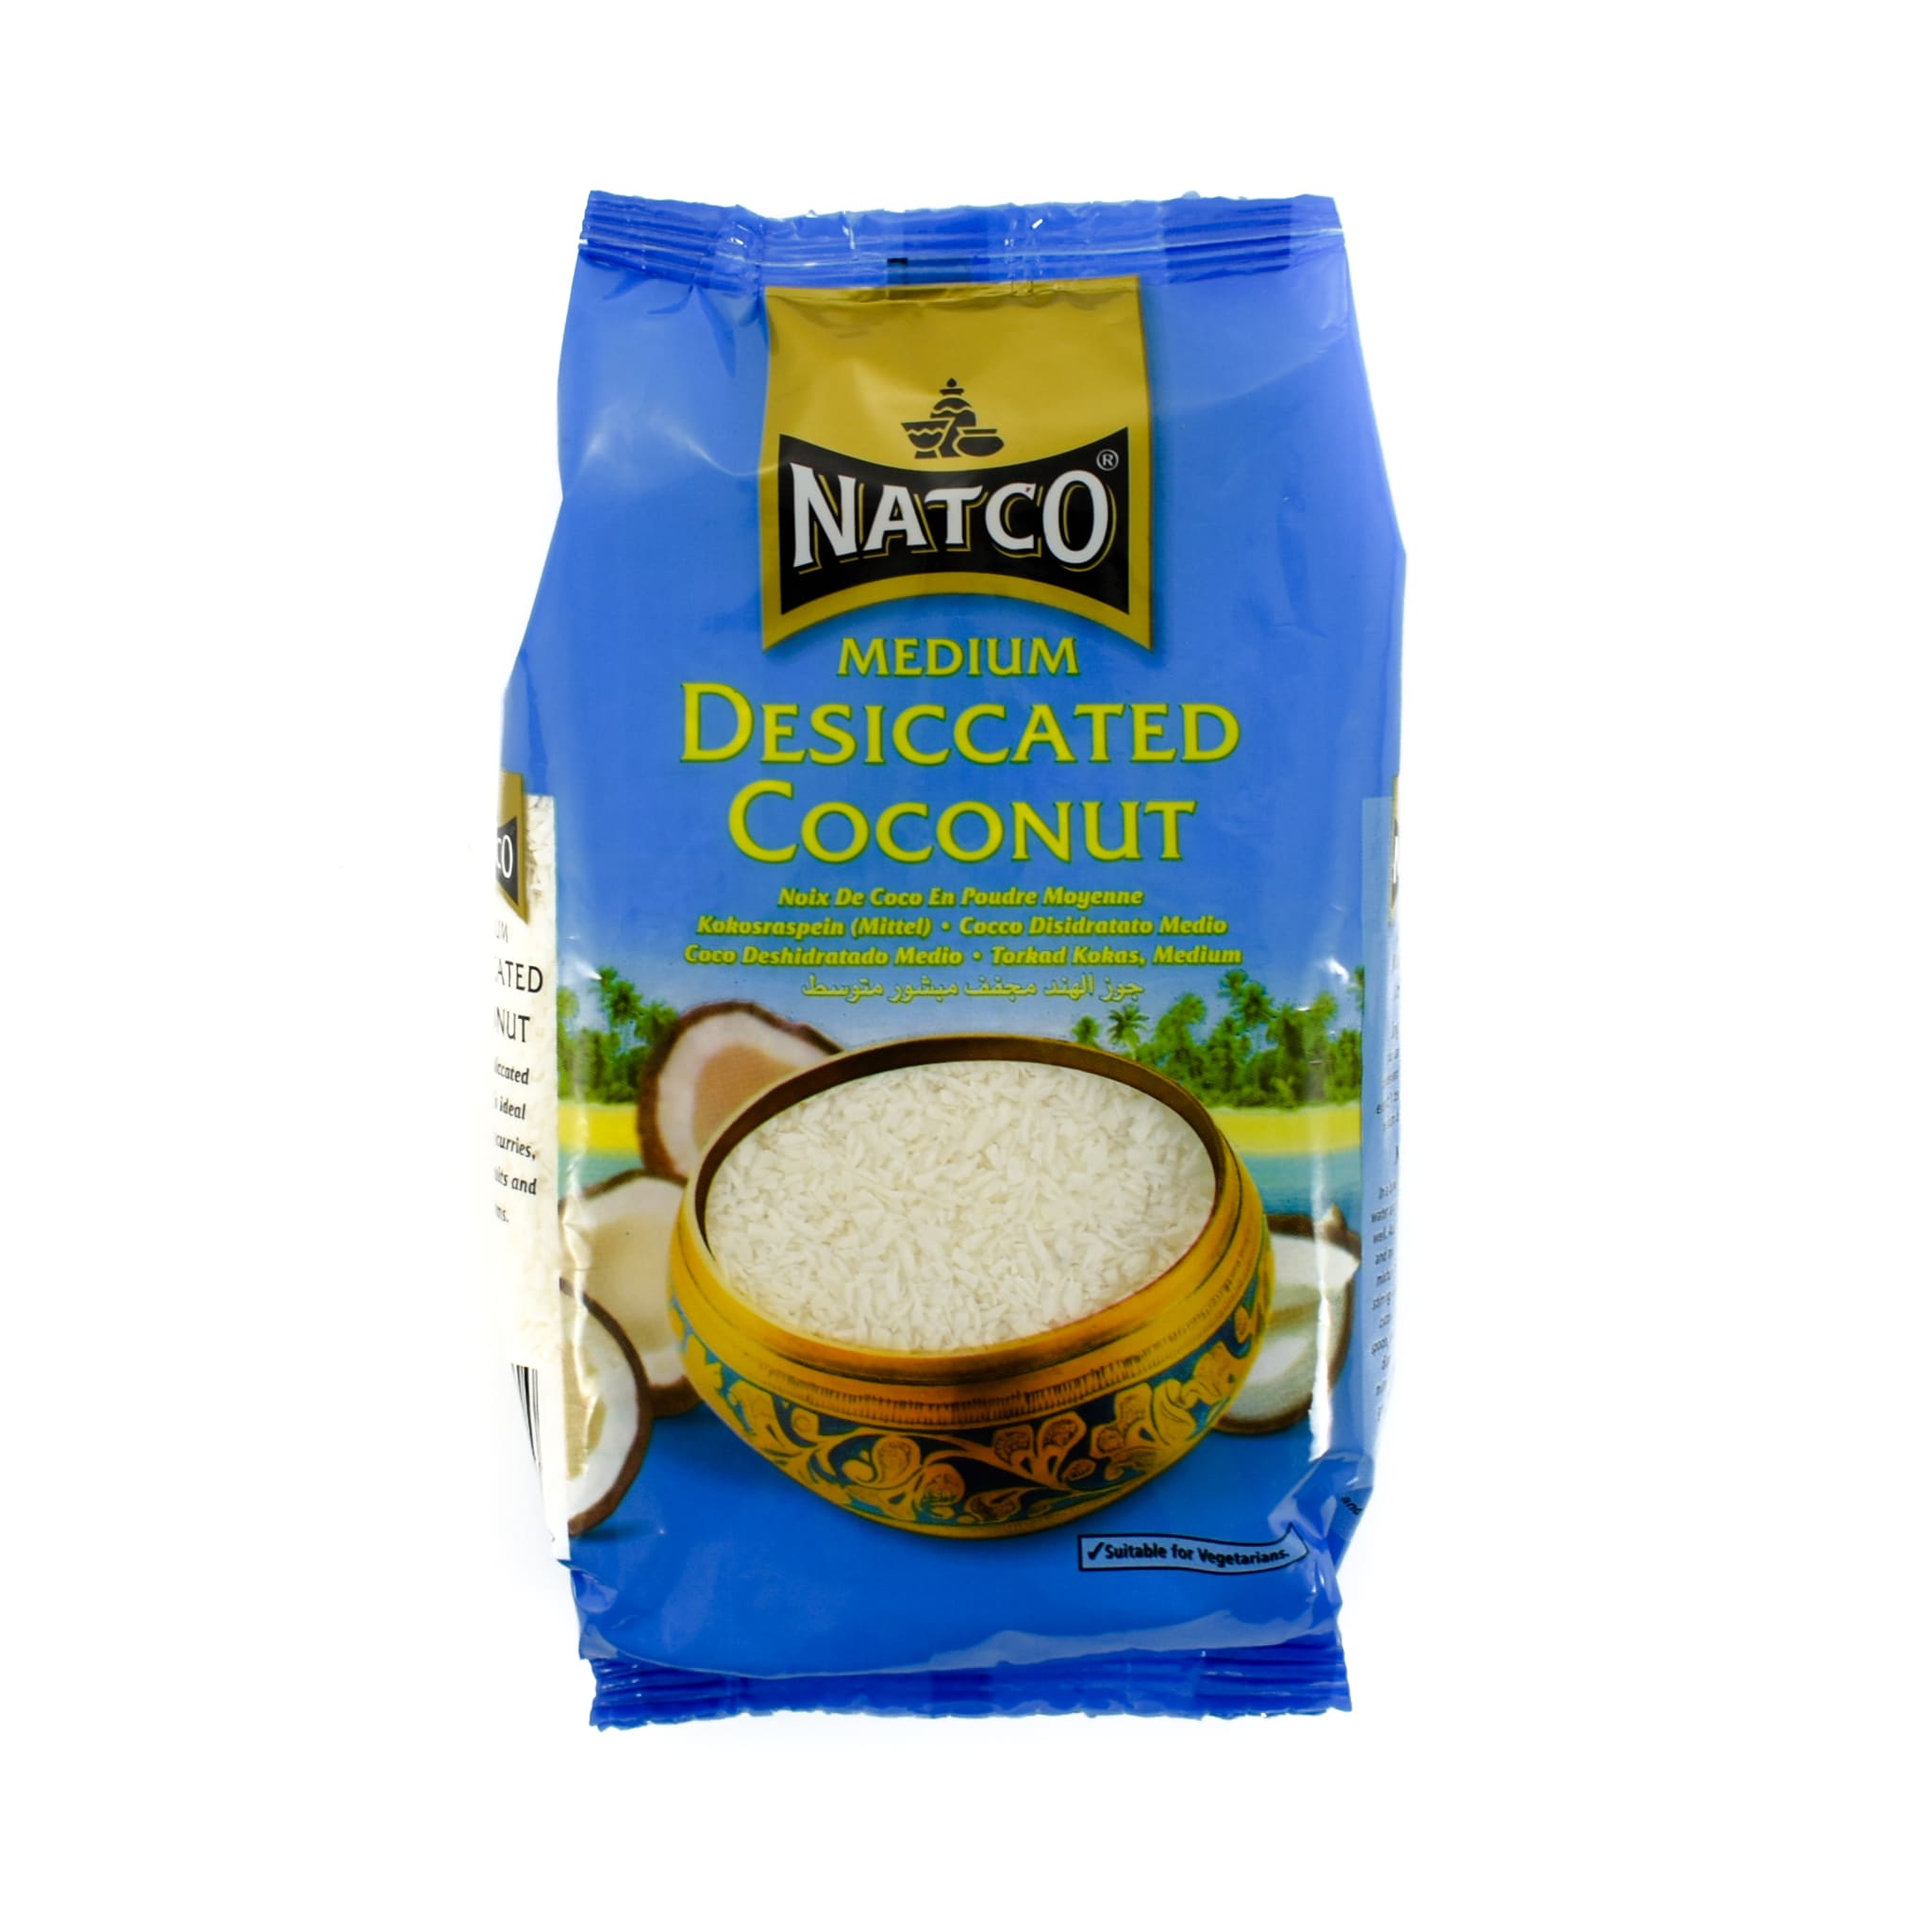 Natco Desiccated Coconut 300g